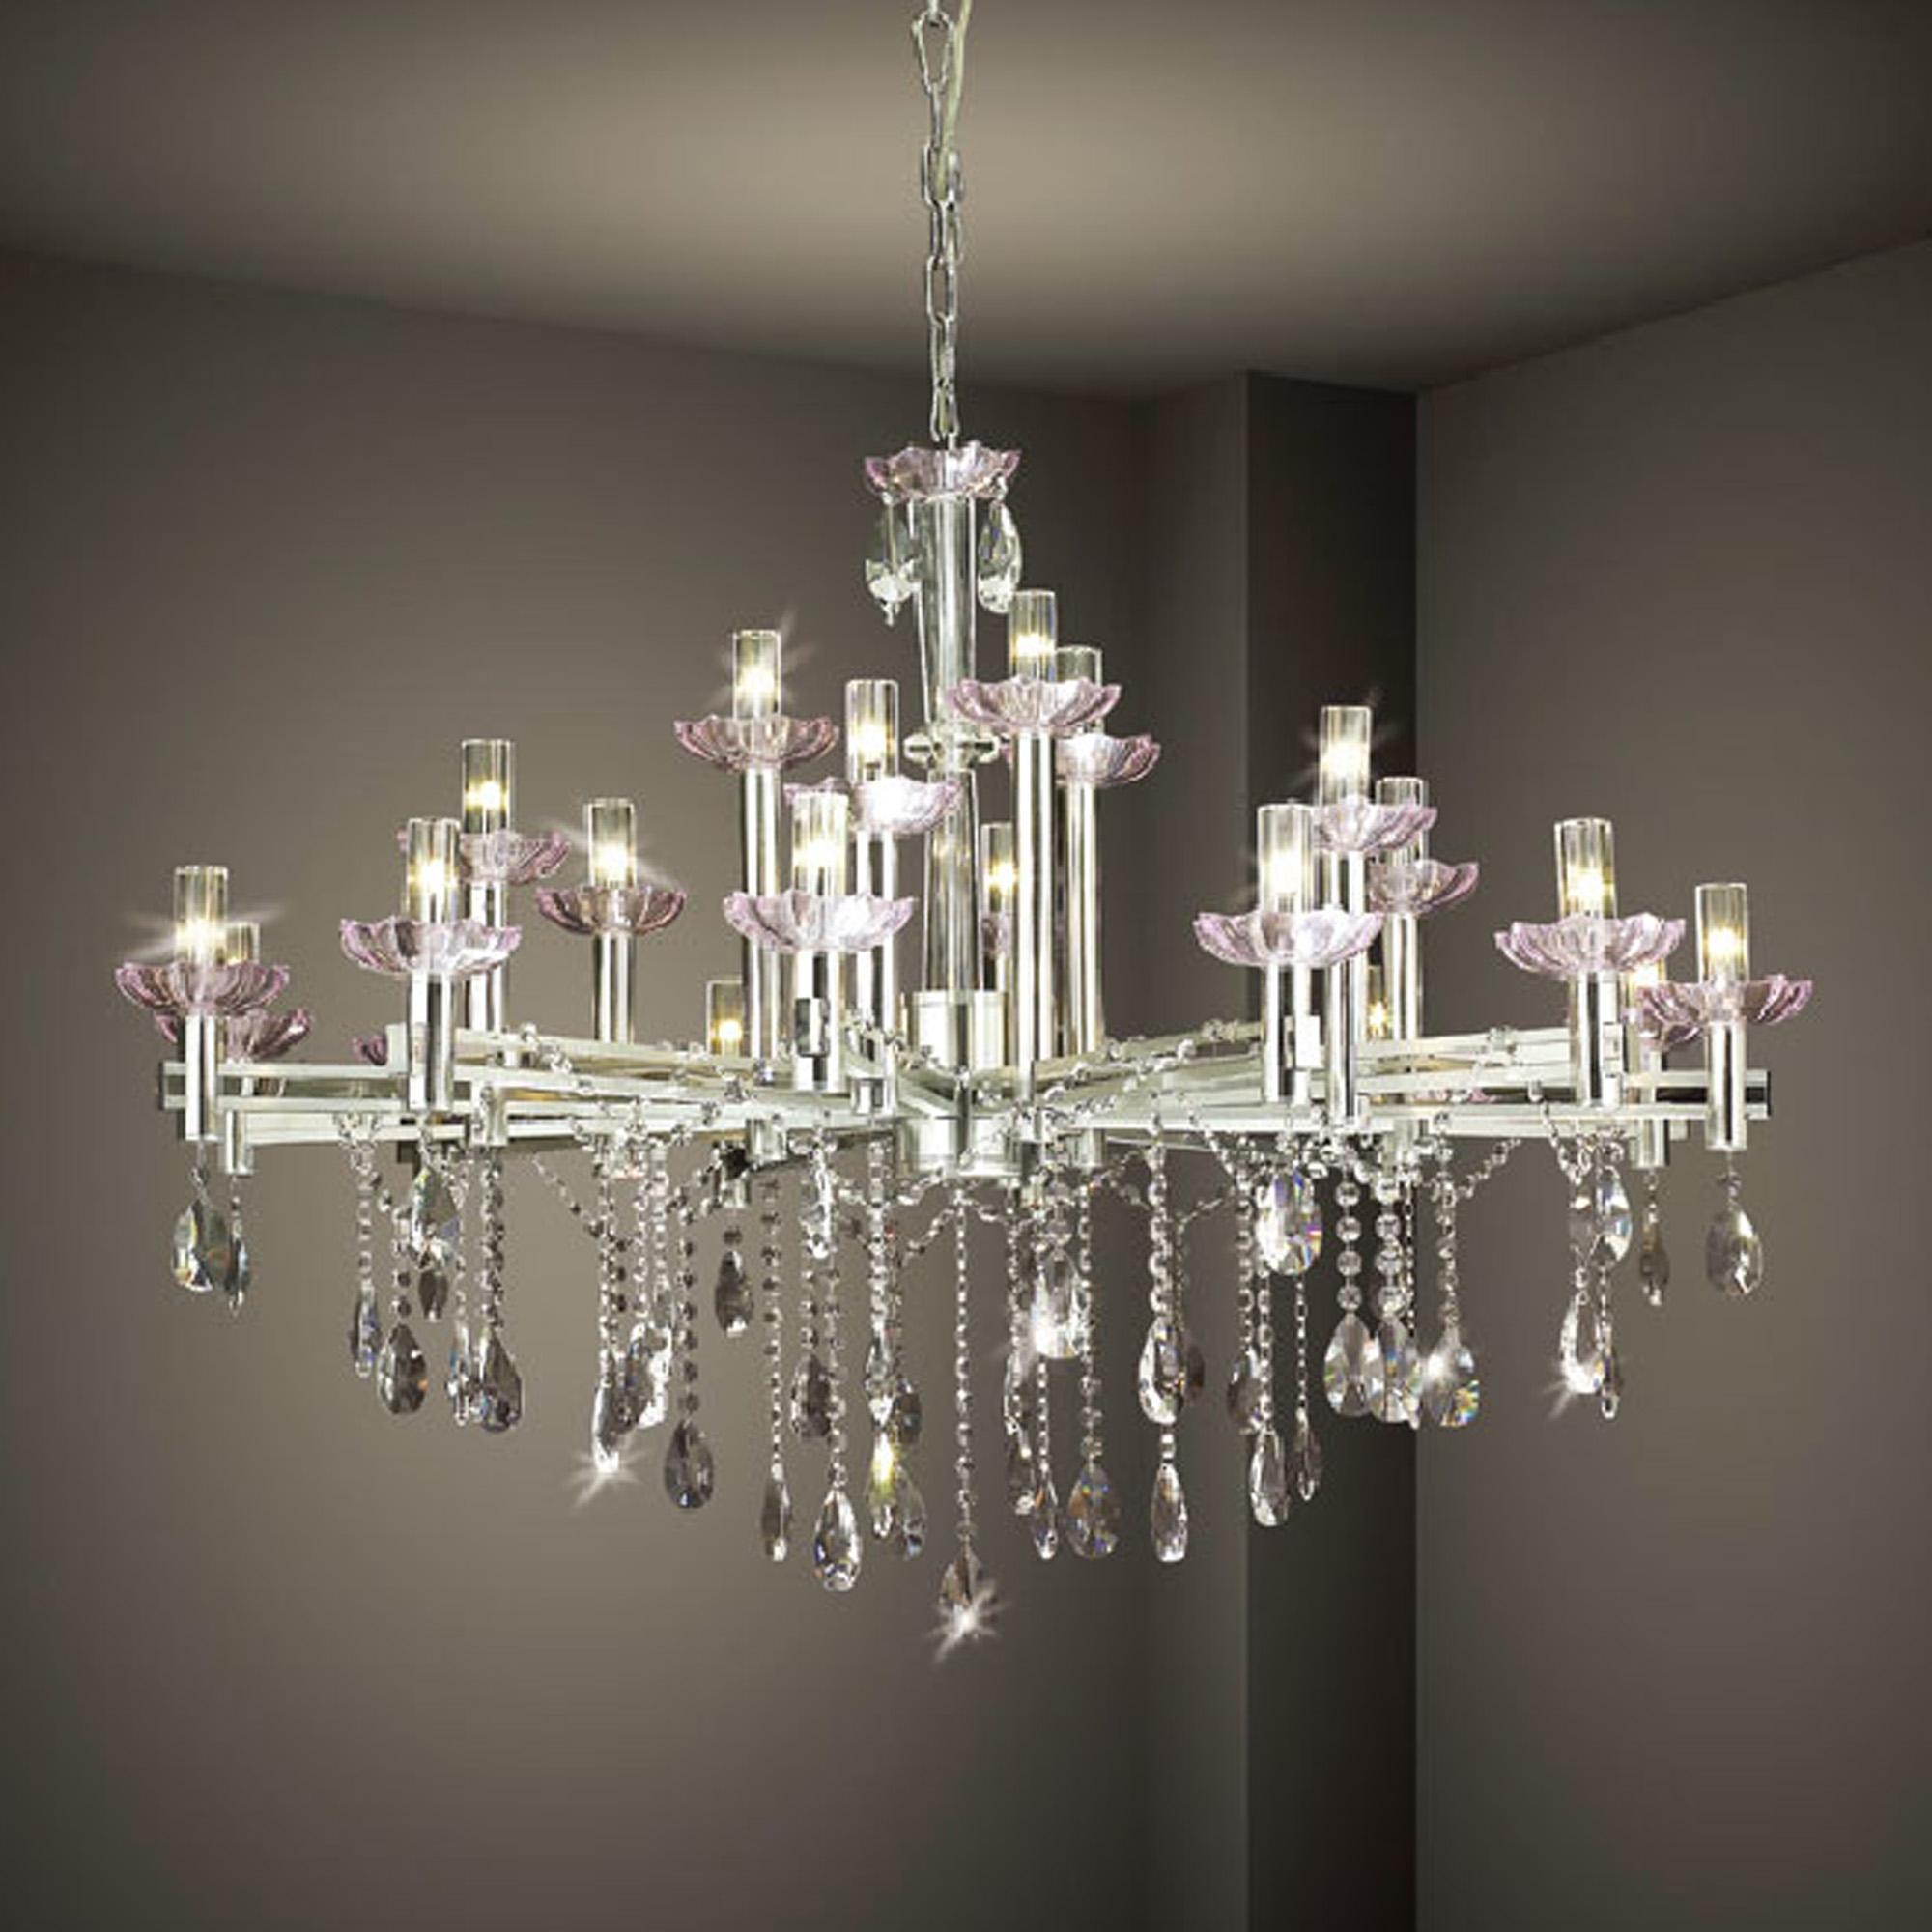 Chandelier Inspiring White Modern Chandelier Large Contemporary Pertaining To White Contemporary Chandelier (Image 4 of 15)